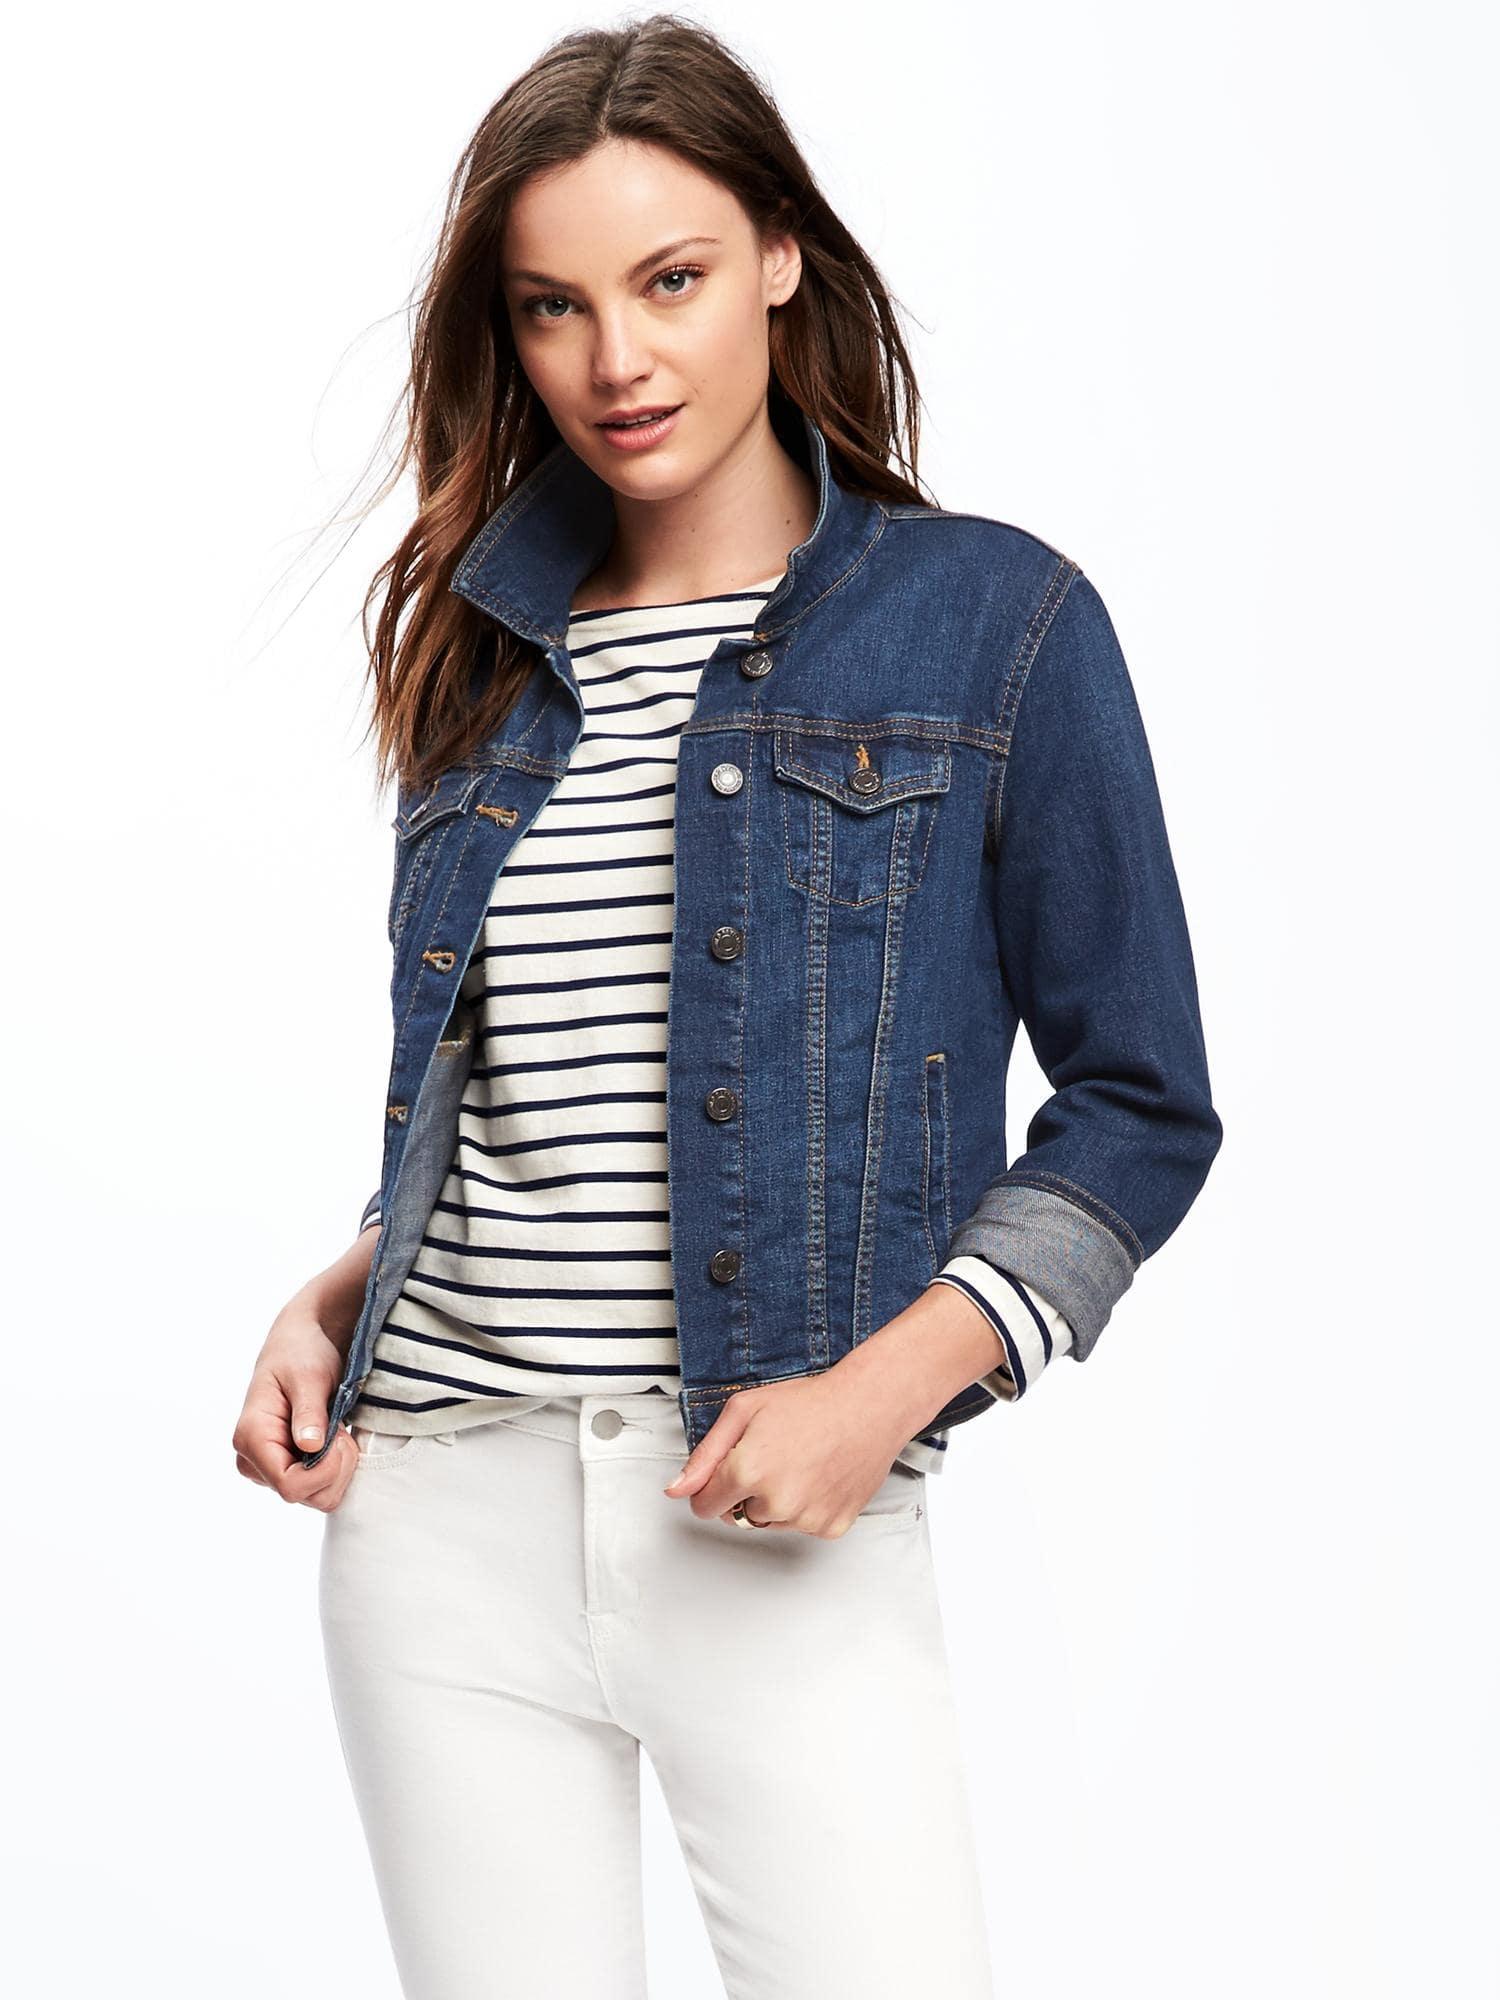 Old Navy (click here)